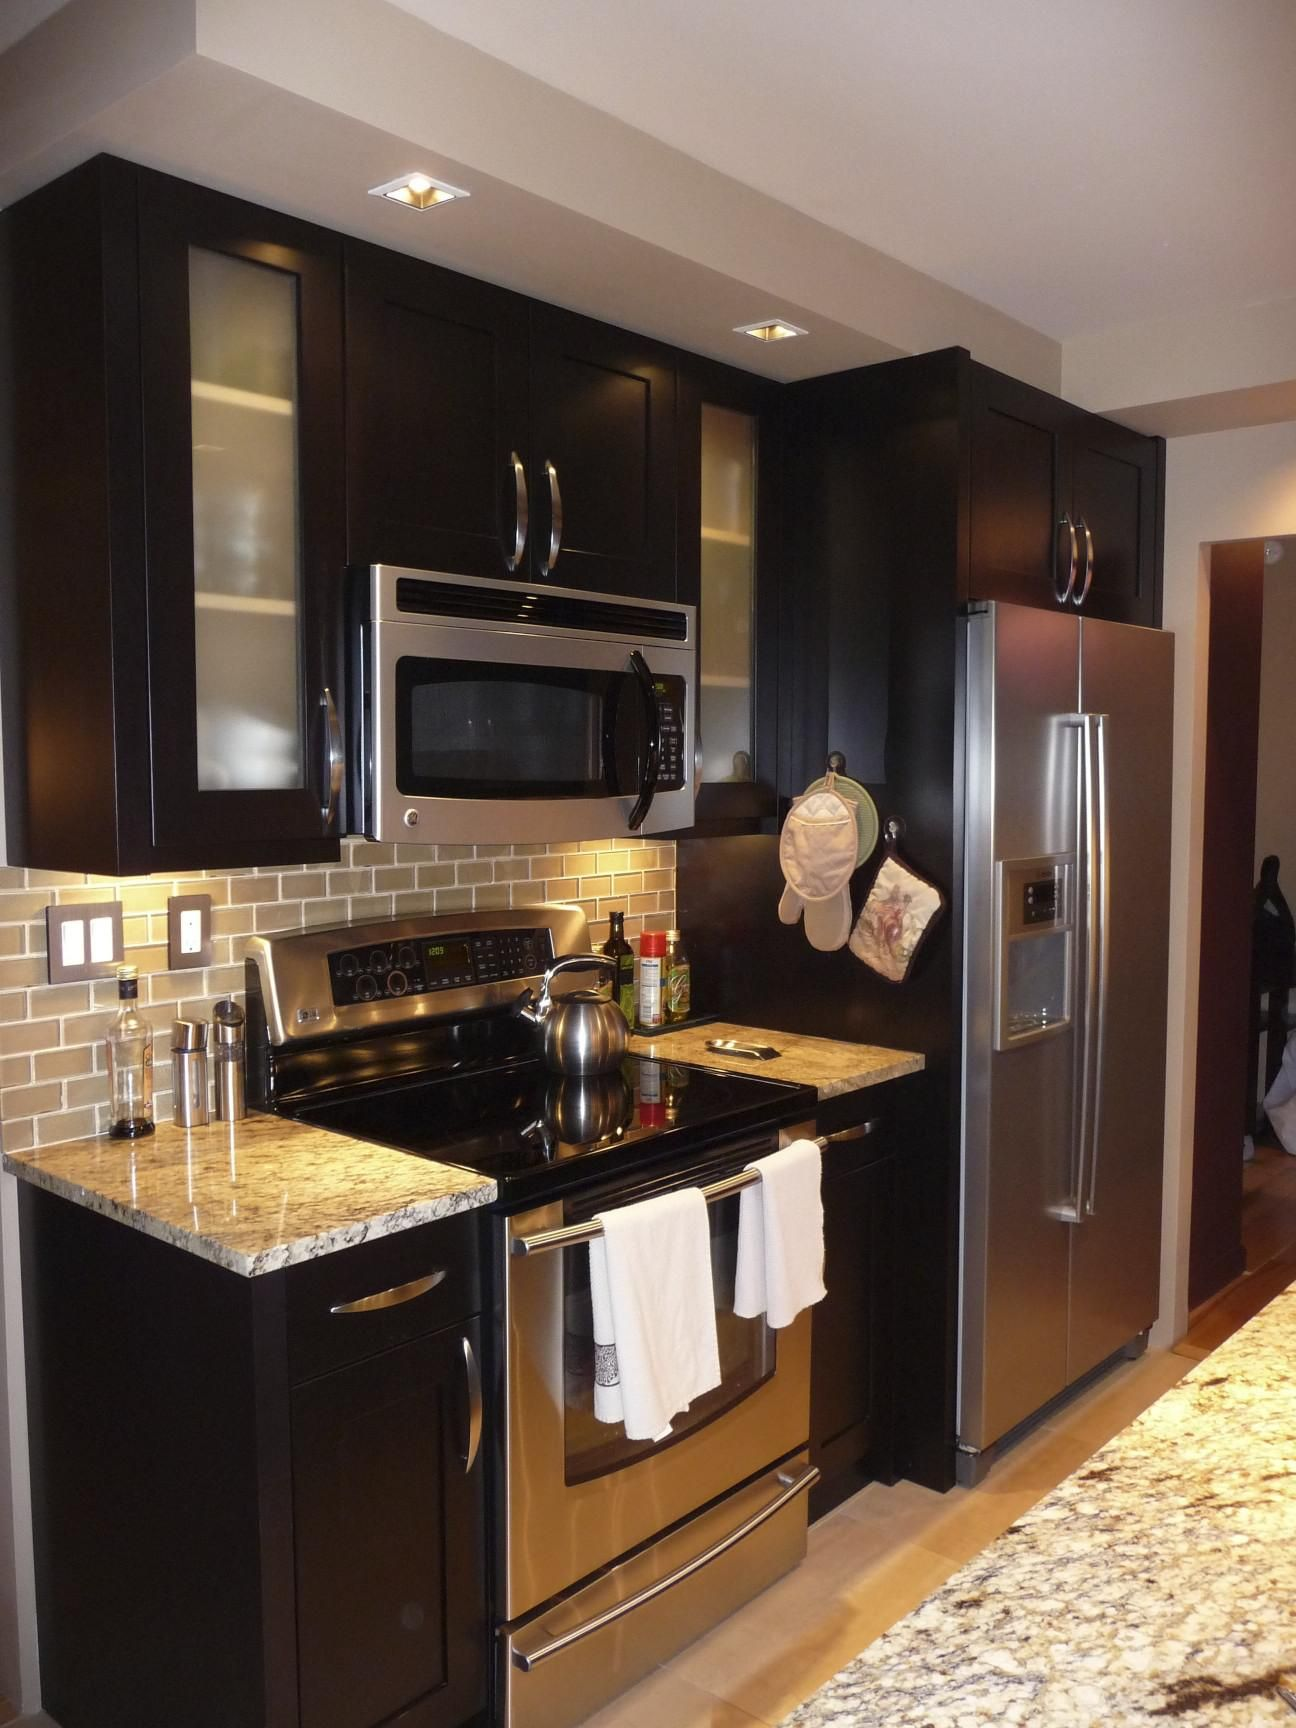 Modern Kitchen Backsplash Dark Cabinets espresso cabinets with stainless steel appliances and backsplash